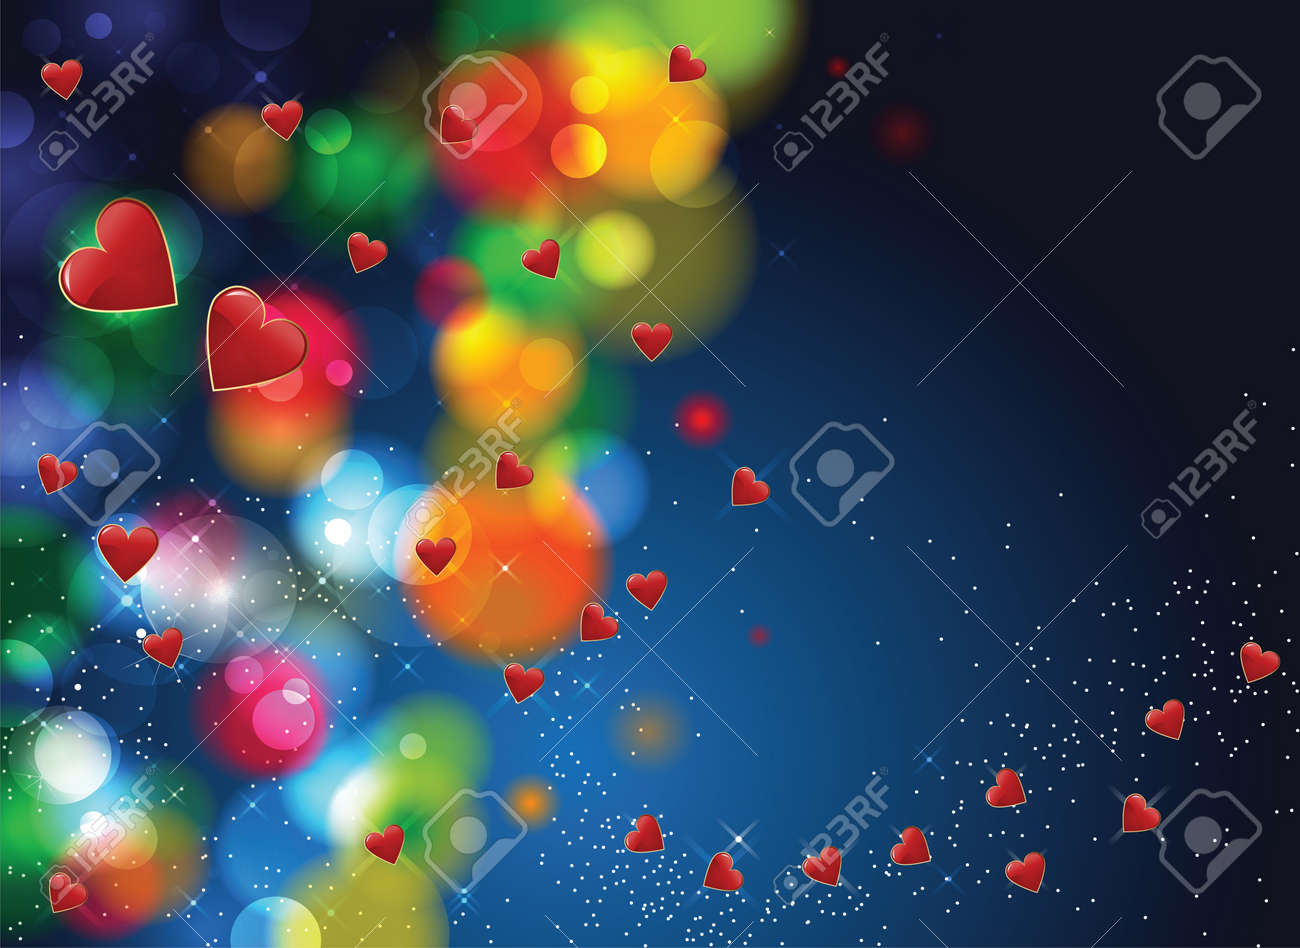 Valentine day red herats flying with colors spotlights and blue background Stock Vector - 17627173